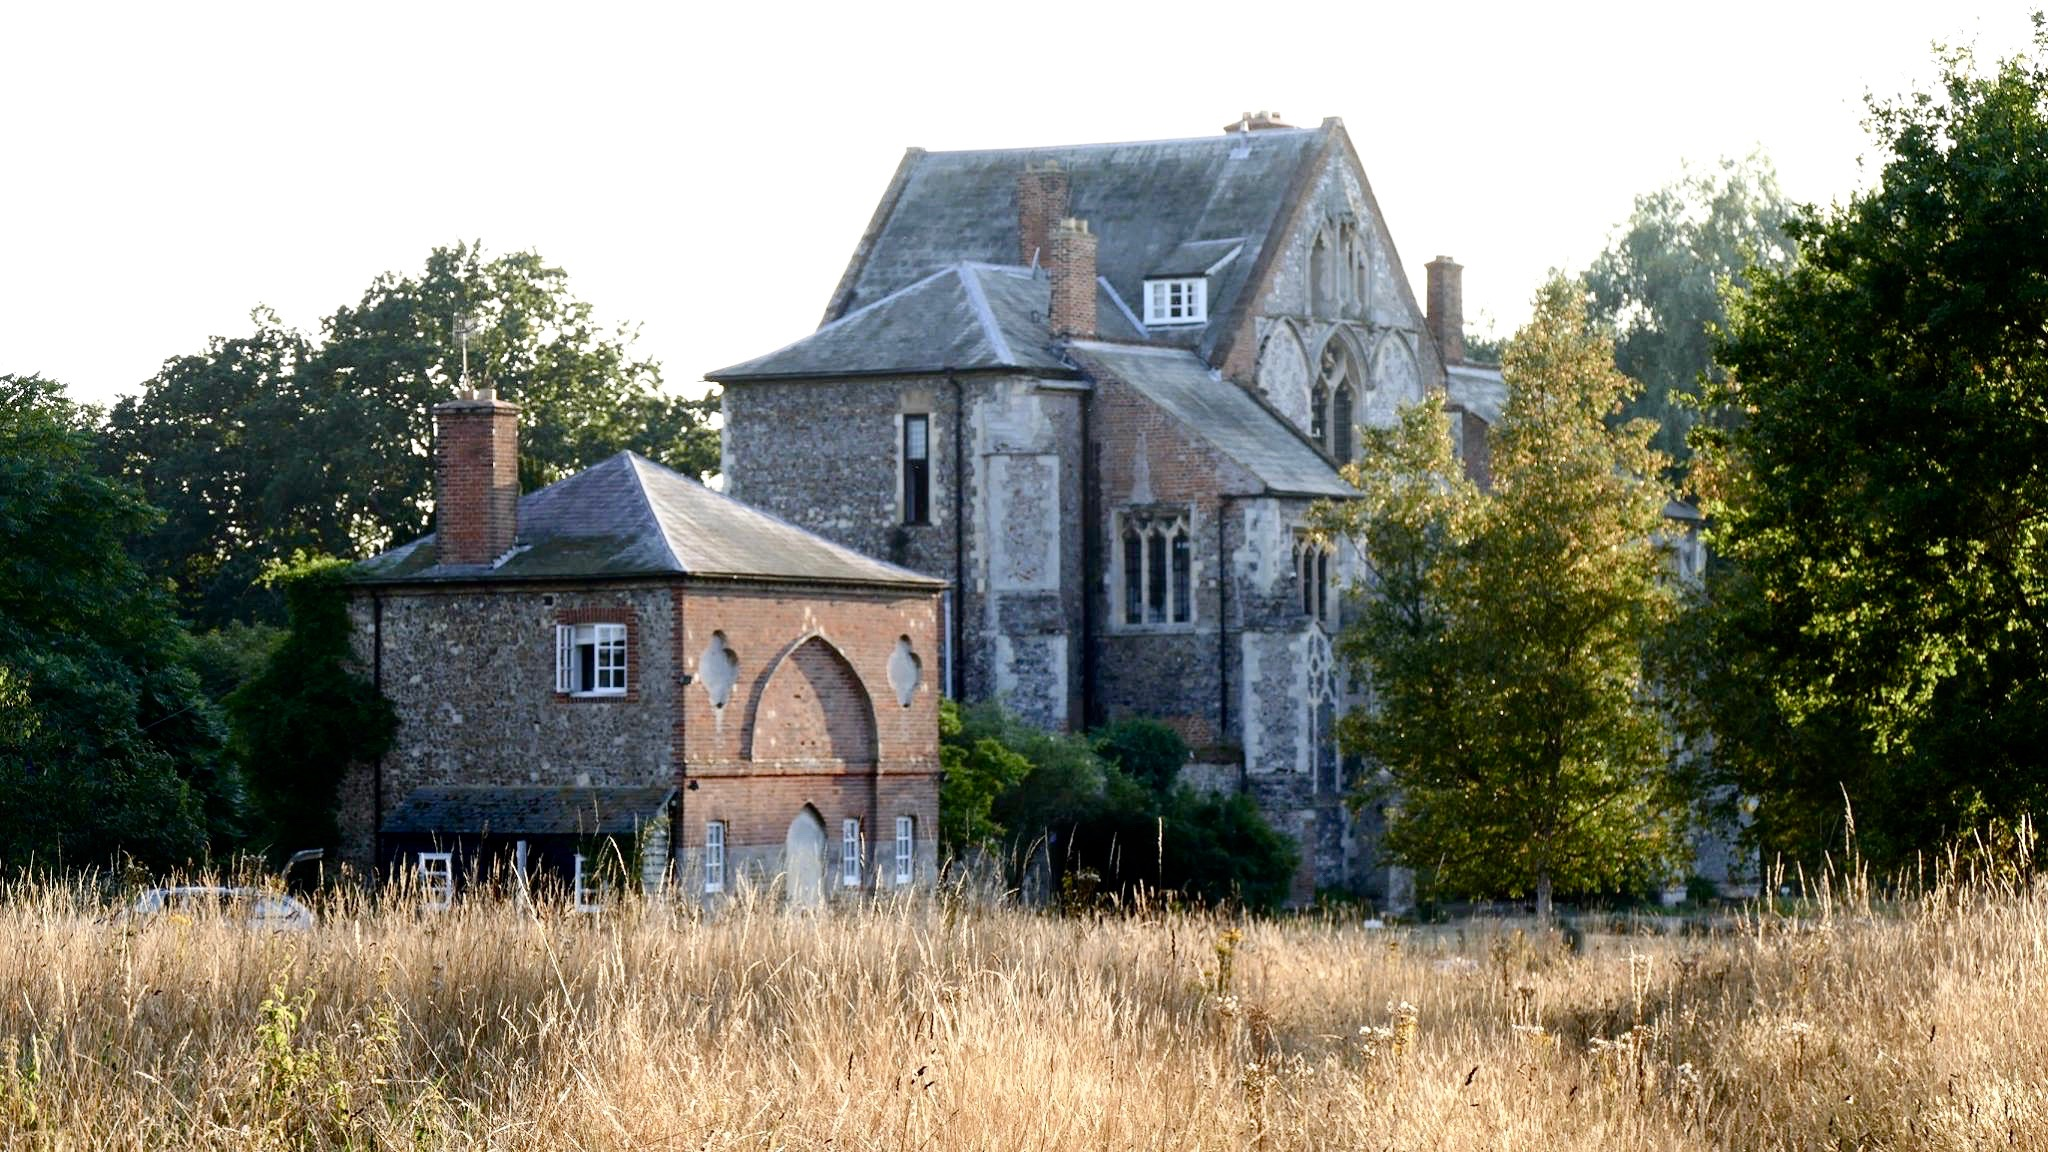 Butley Priory  is a small venue so tickets are limited due to space. Our most recent concert with  Peter Gregson  was SOLD OUT quickly so I encourage you to book soon if you'd like to come.   Thursday 4th July 19:00 to 22:00  £20 or a limited number at £10 sitting on a cushion on the floor.     TICKETS    So I hope you can make it on July 4th, See you then!  With love,    Frances